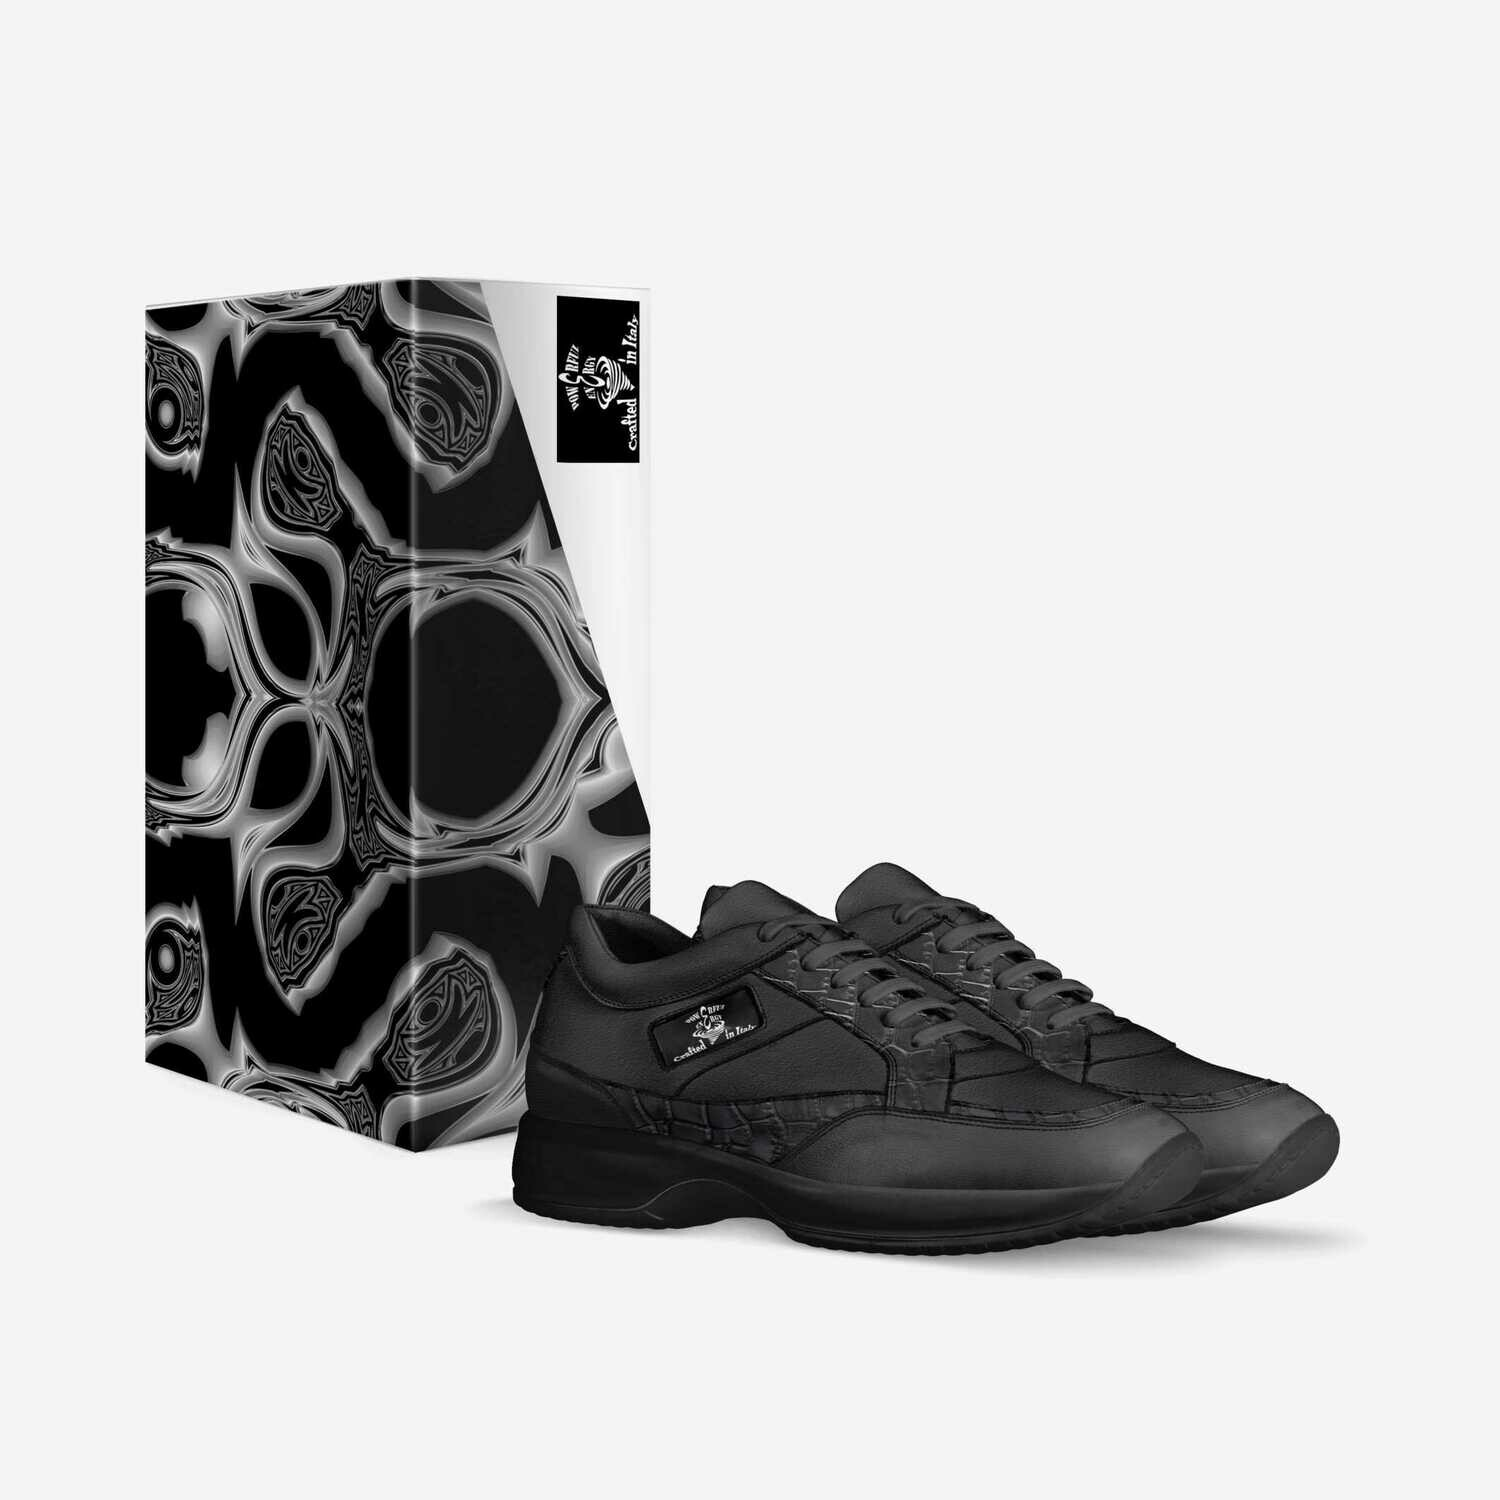 Duality's Masquerade:  Unisex Sneakers. Made in Italy. Custom Orders! $214